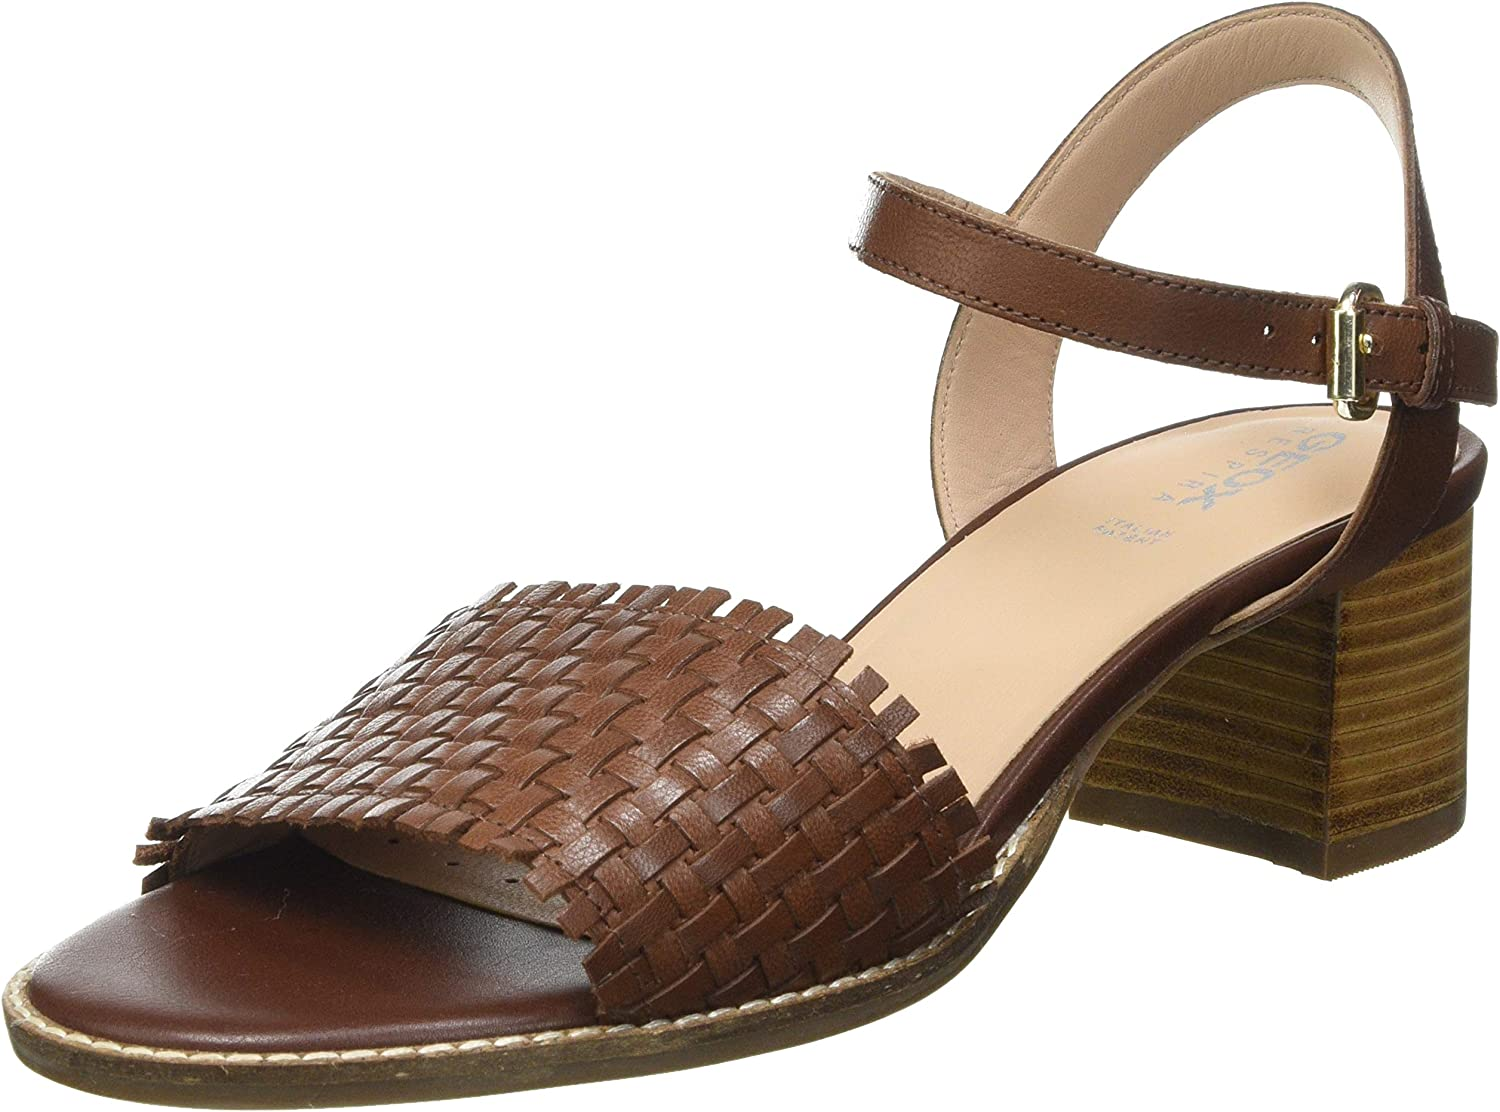 All stores are sold Geox womens Ankle-Strap Heeled overseas US 8 Sandal BROWN